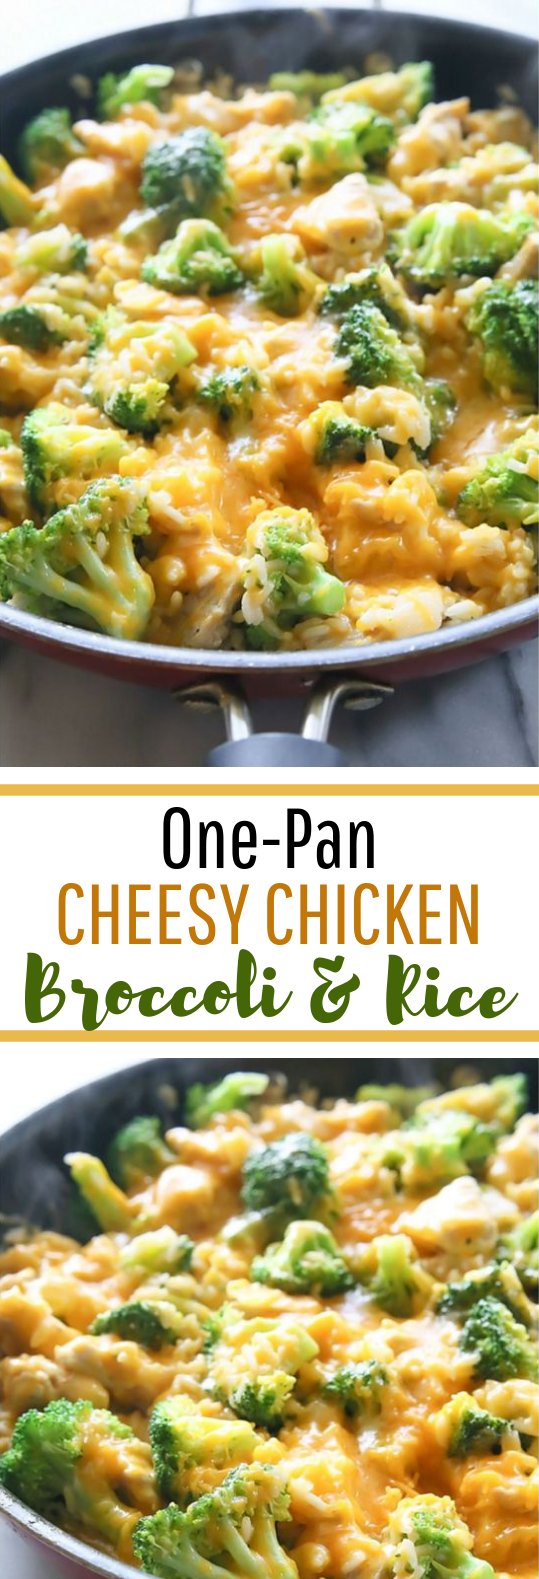 One-Pan Cheesy Chicken, Broccoli, and Rice #deliciousmeal #quickrecipe